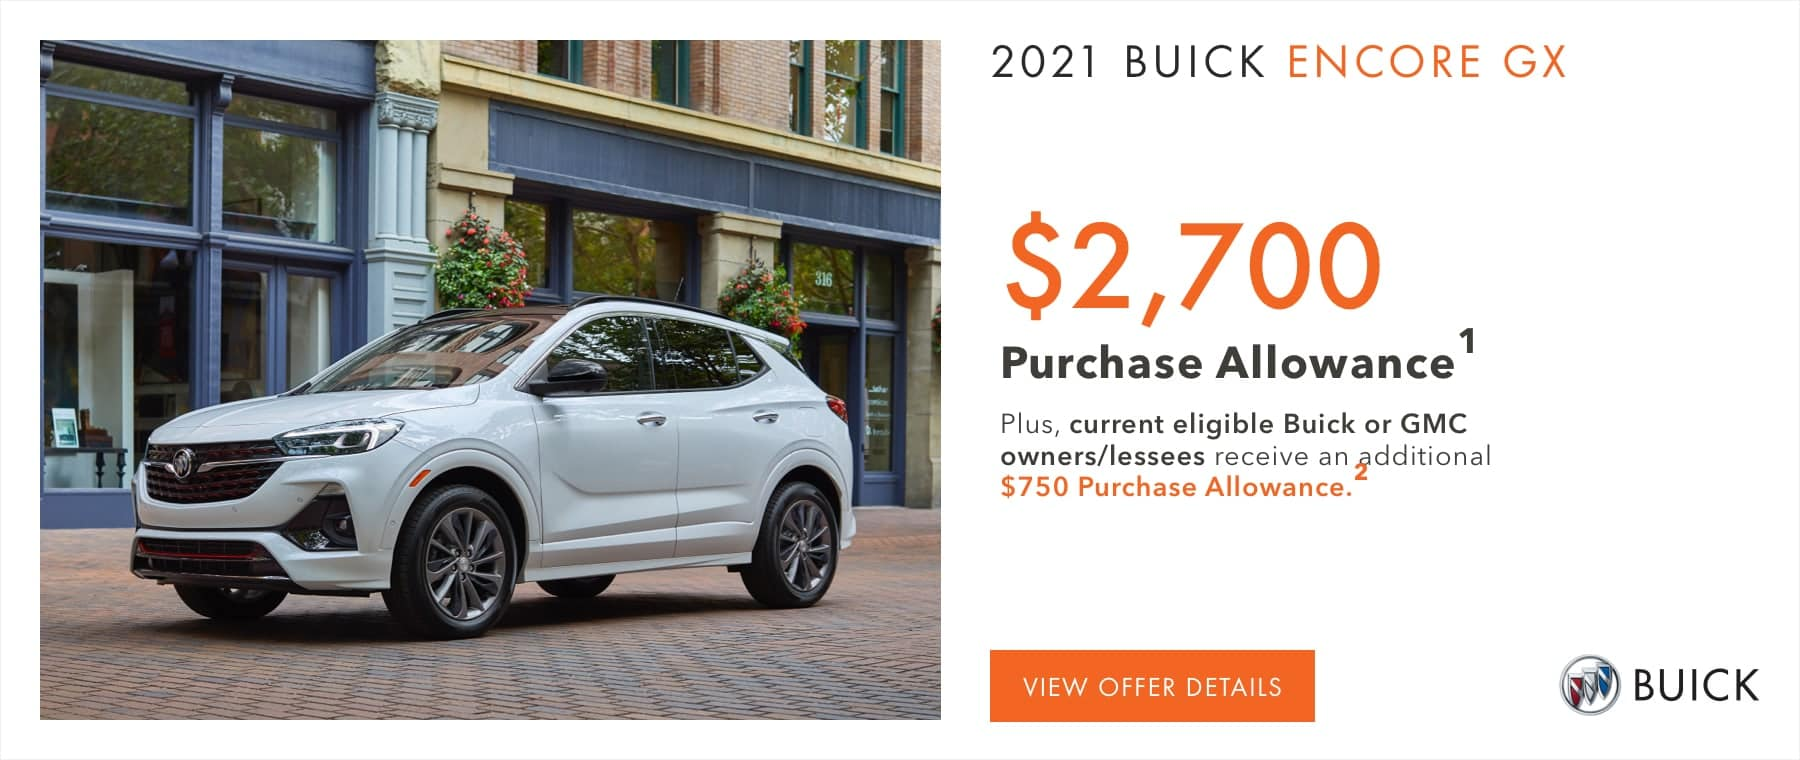 $2,700 Purchase Allowance.1 Plus, current eligible Buick or GMC owners/lessees receive an additional $750 Purchase Allowance.2